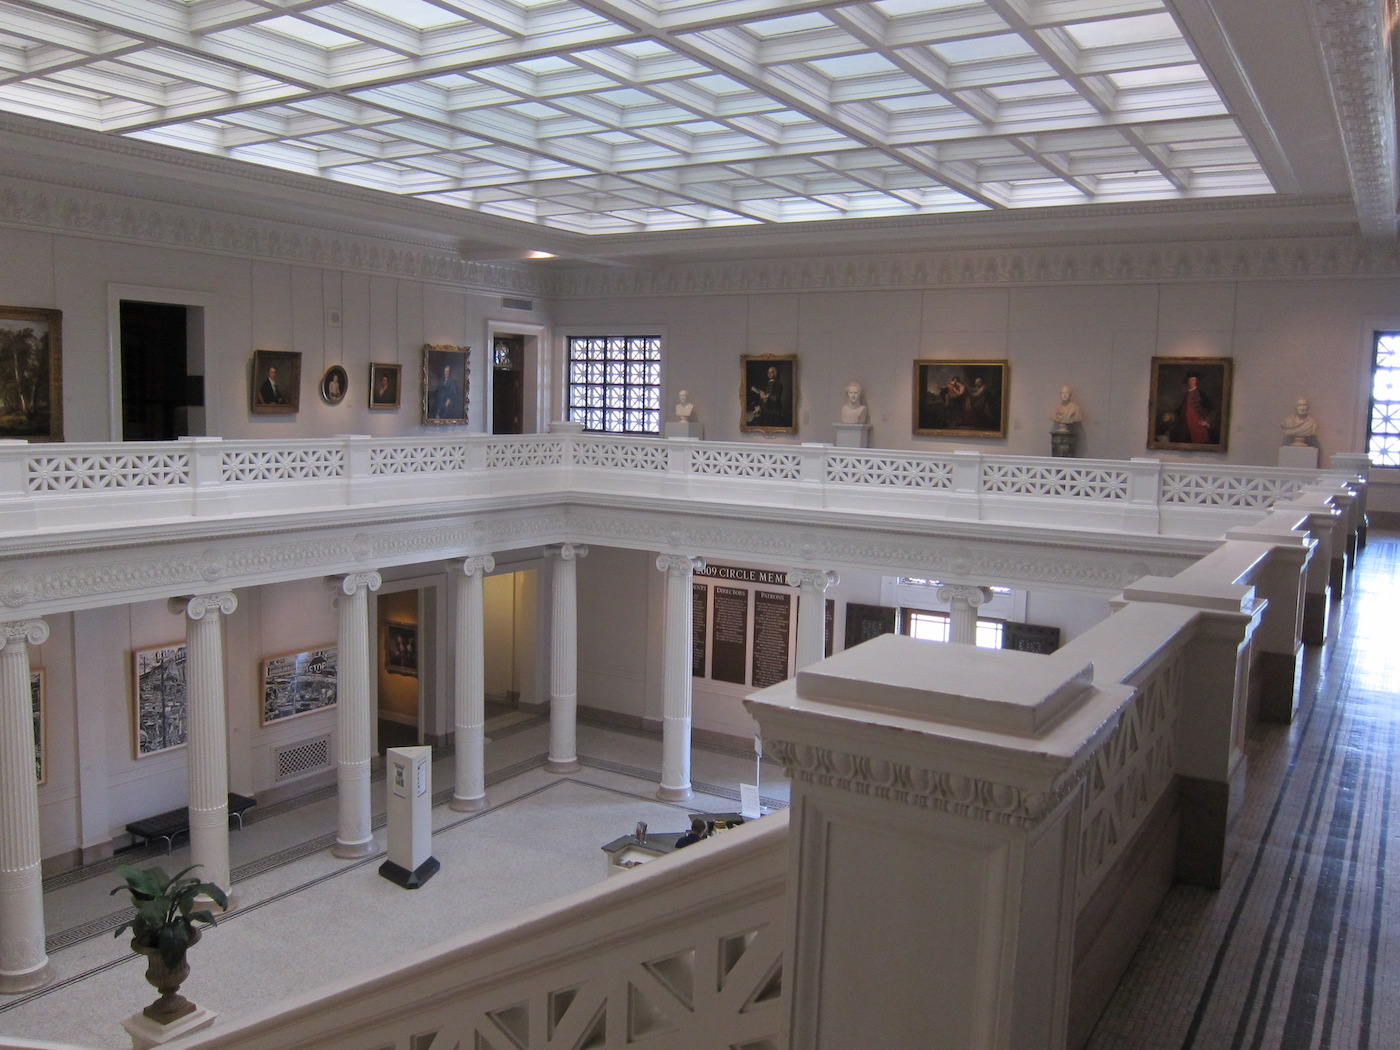 upstairs-at-the-new-orleans-museum-of-art